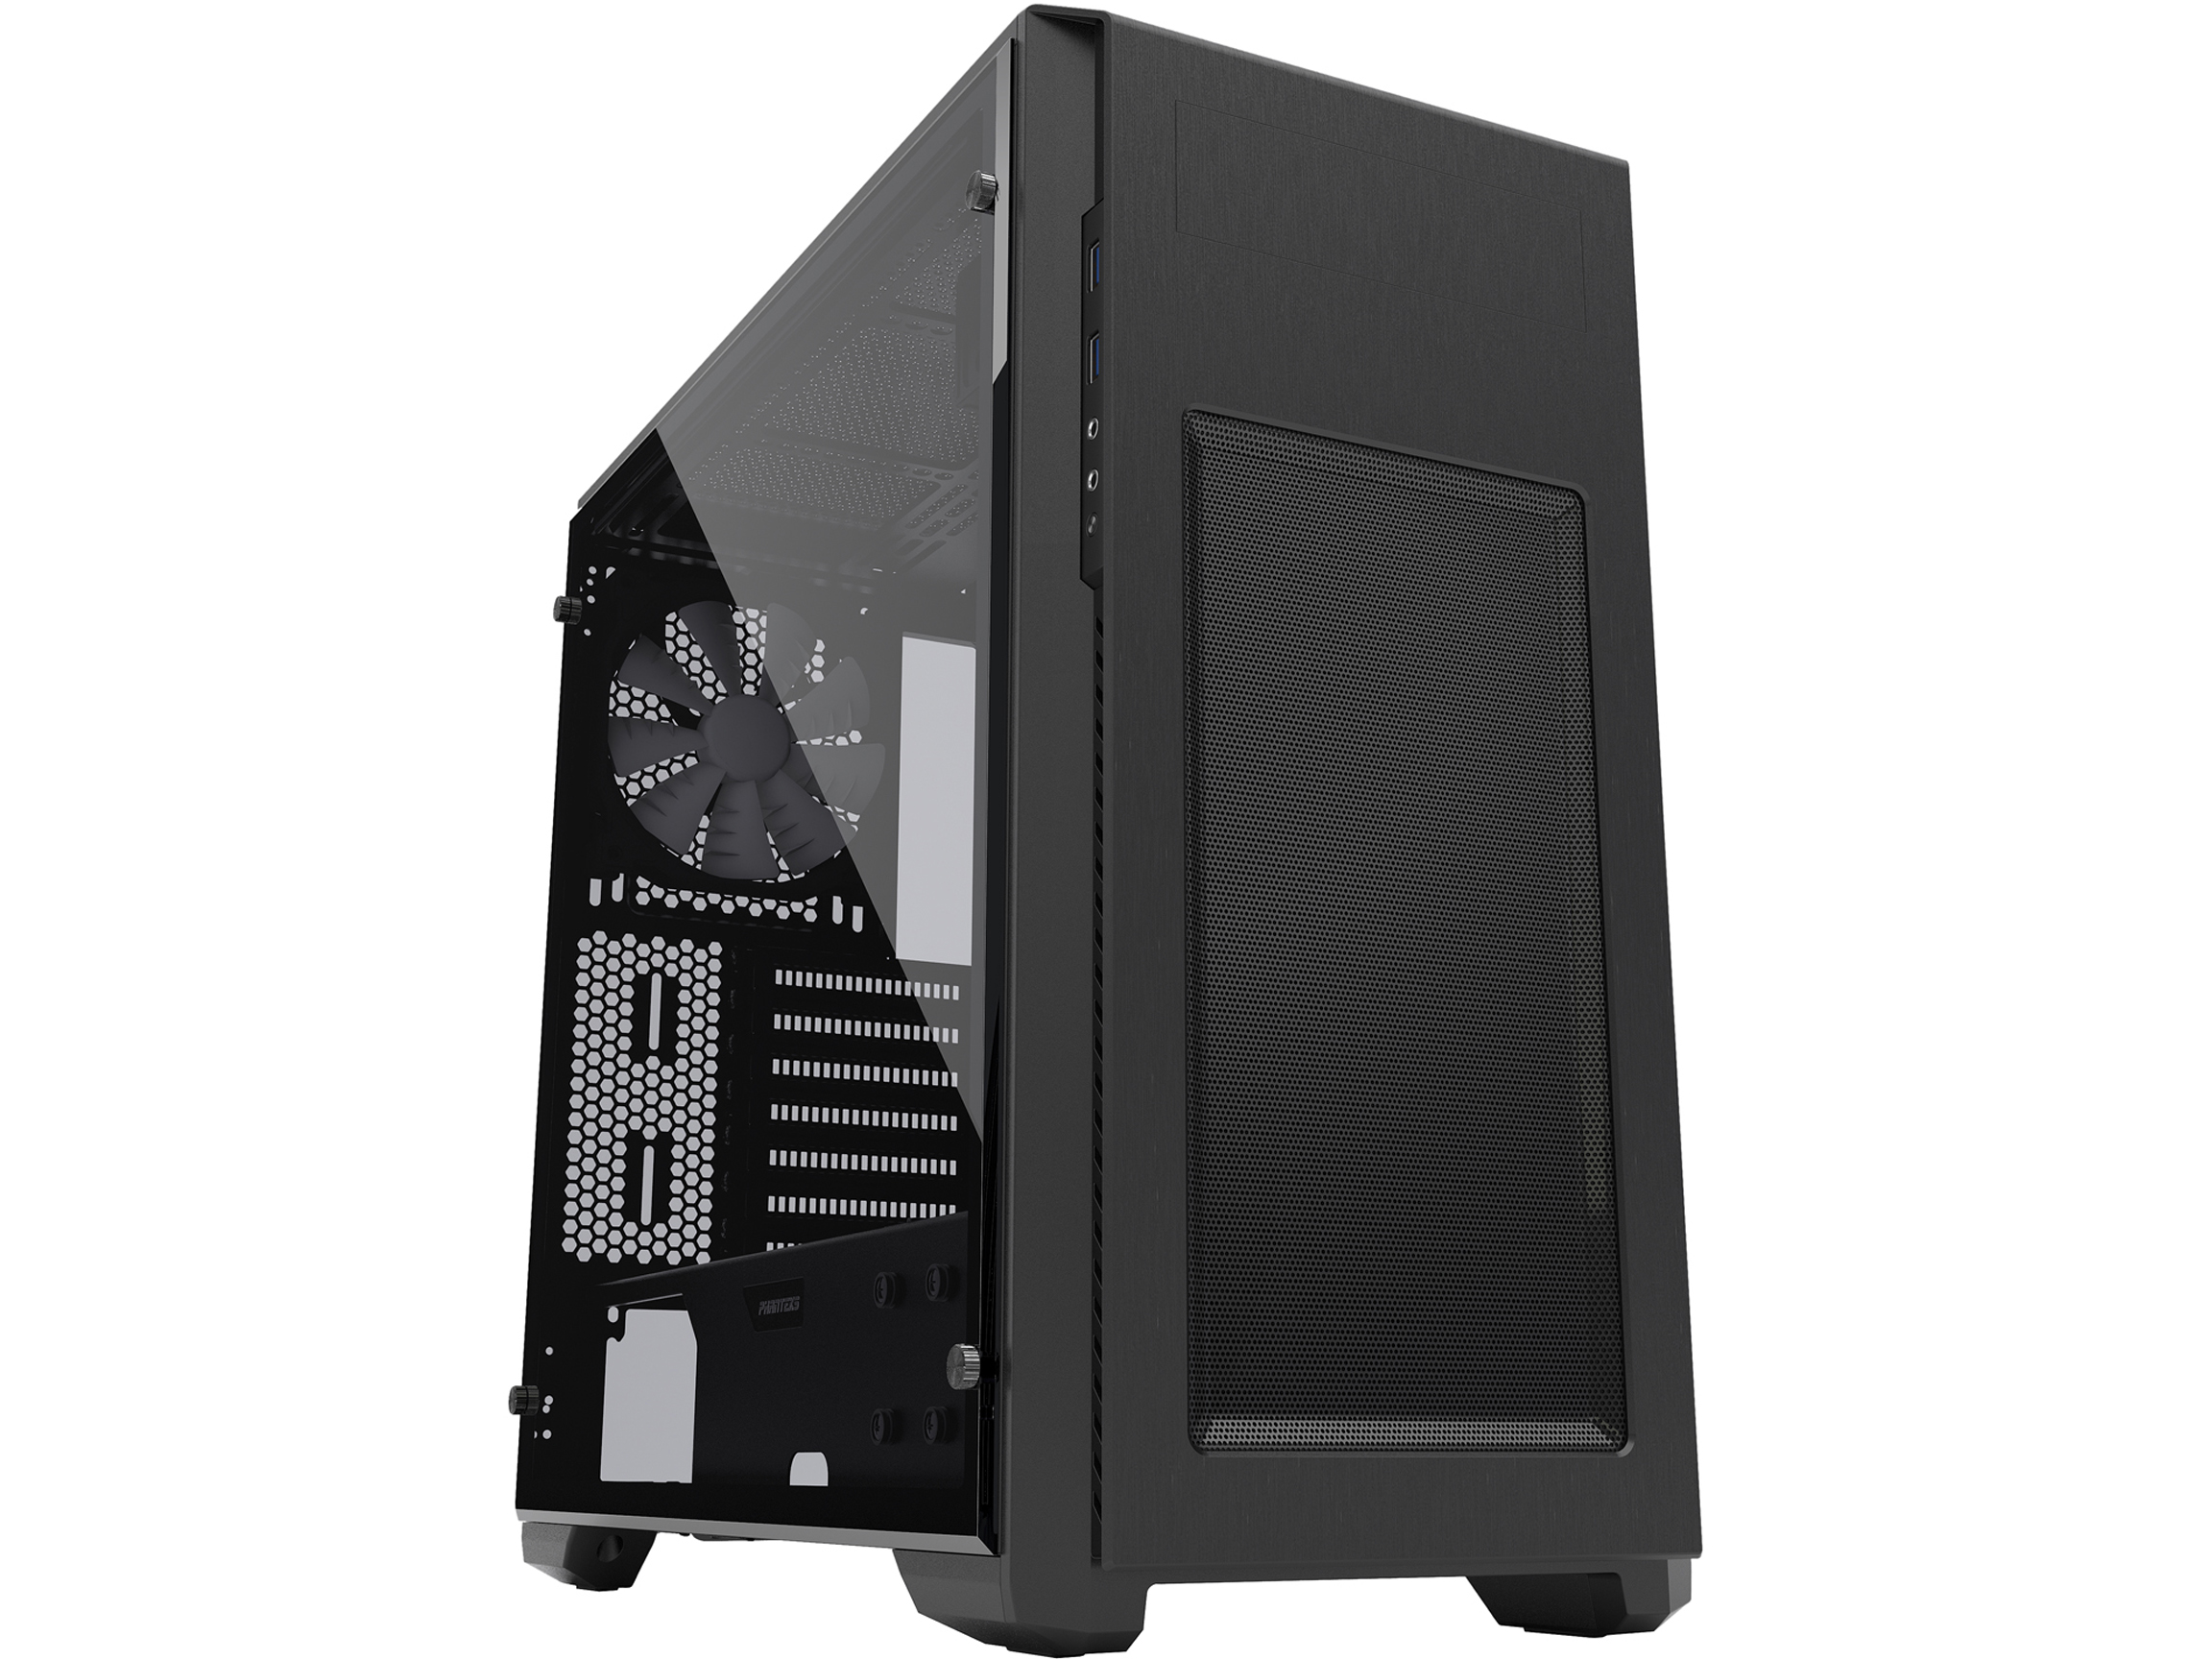 Phanteks Enthoo Pro M Series Tempered Glass  ATX Mid Tower Computer Case